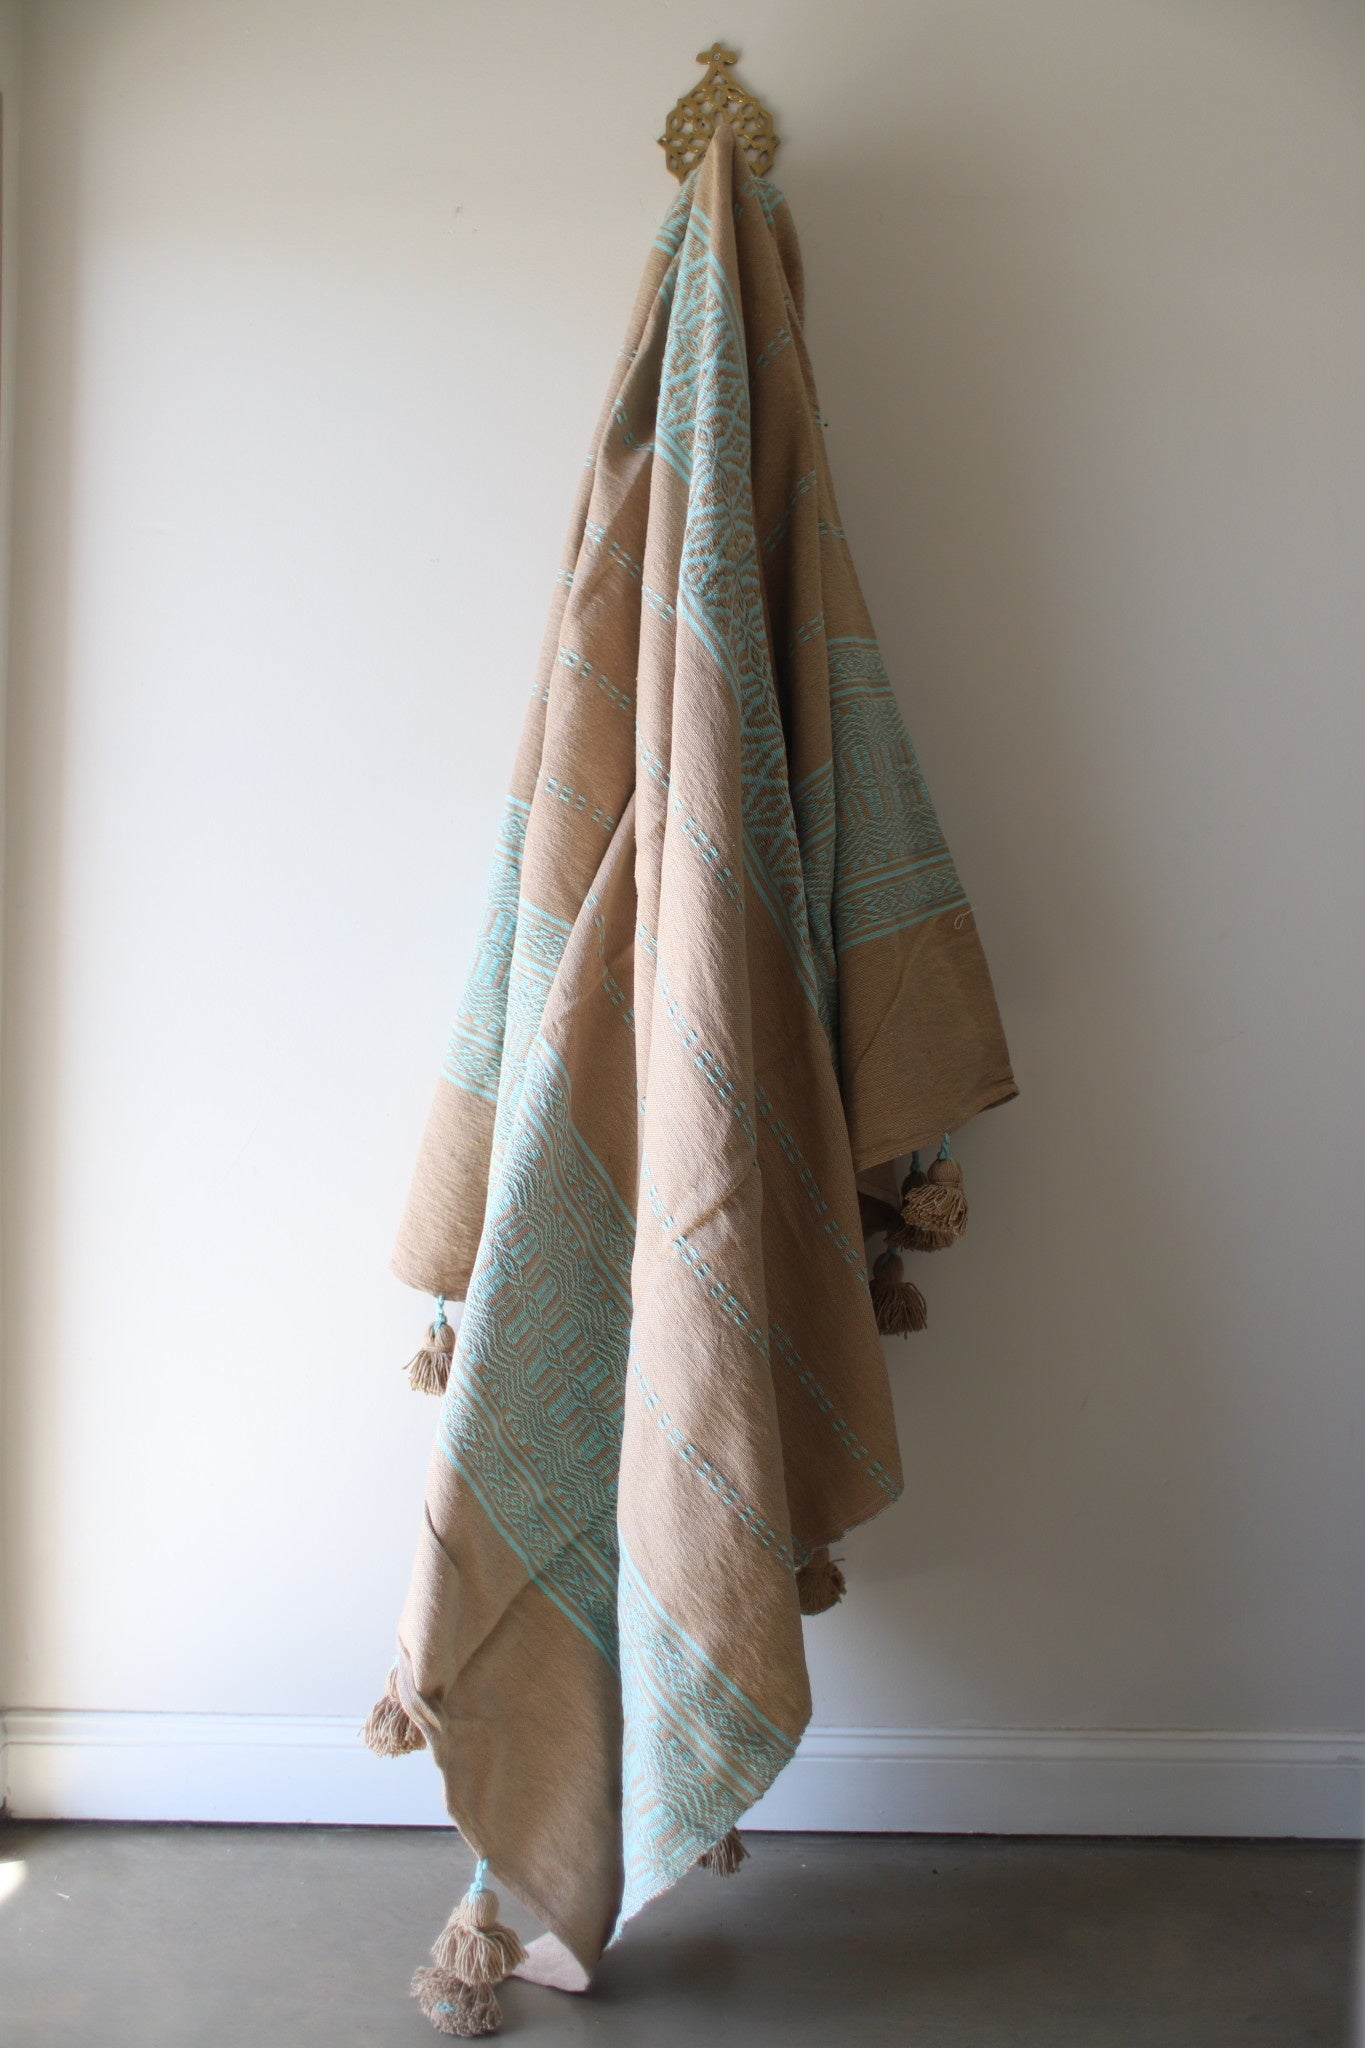 Moroccan Blanket - Large Pattern - Tan & Aqua